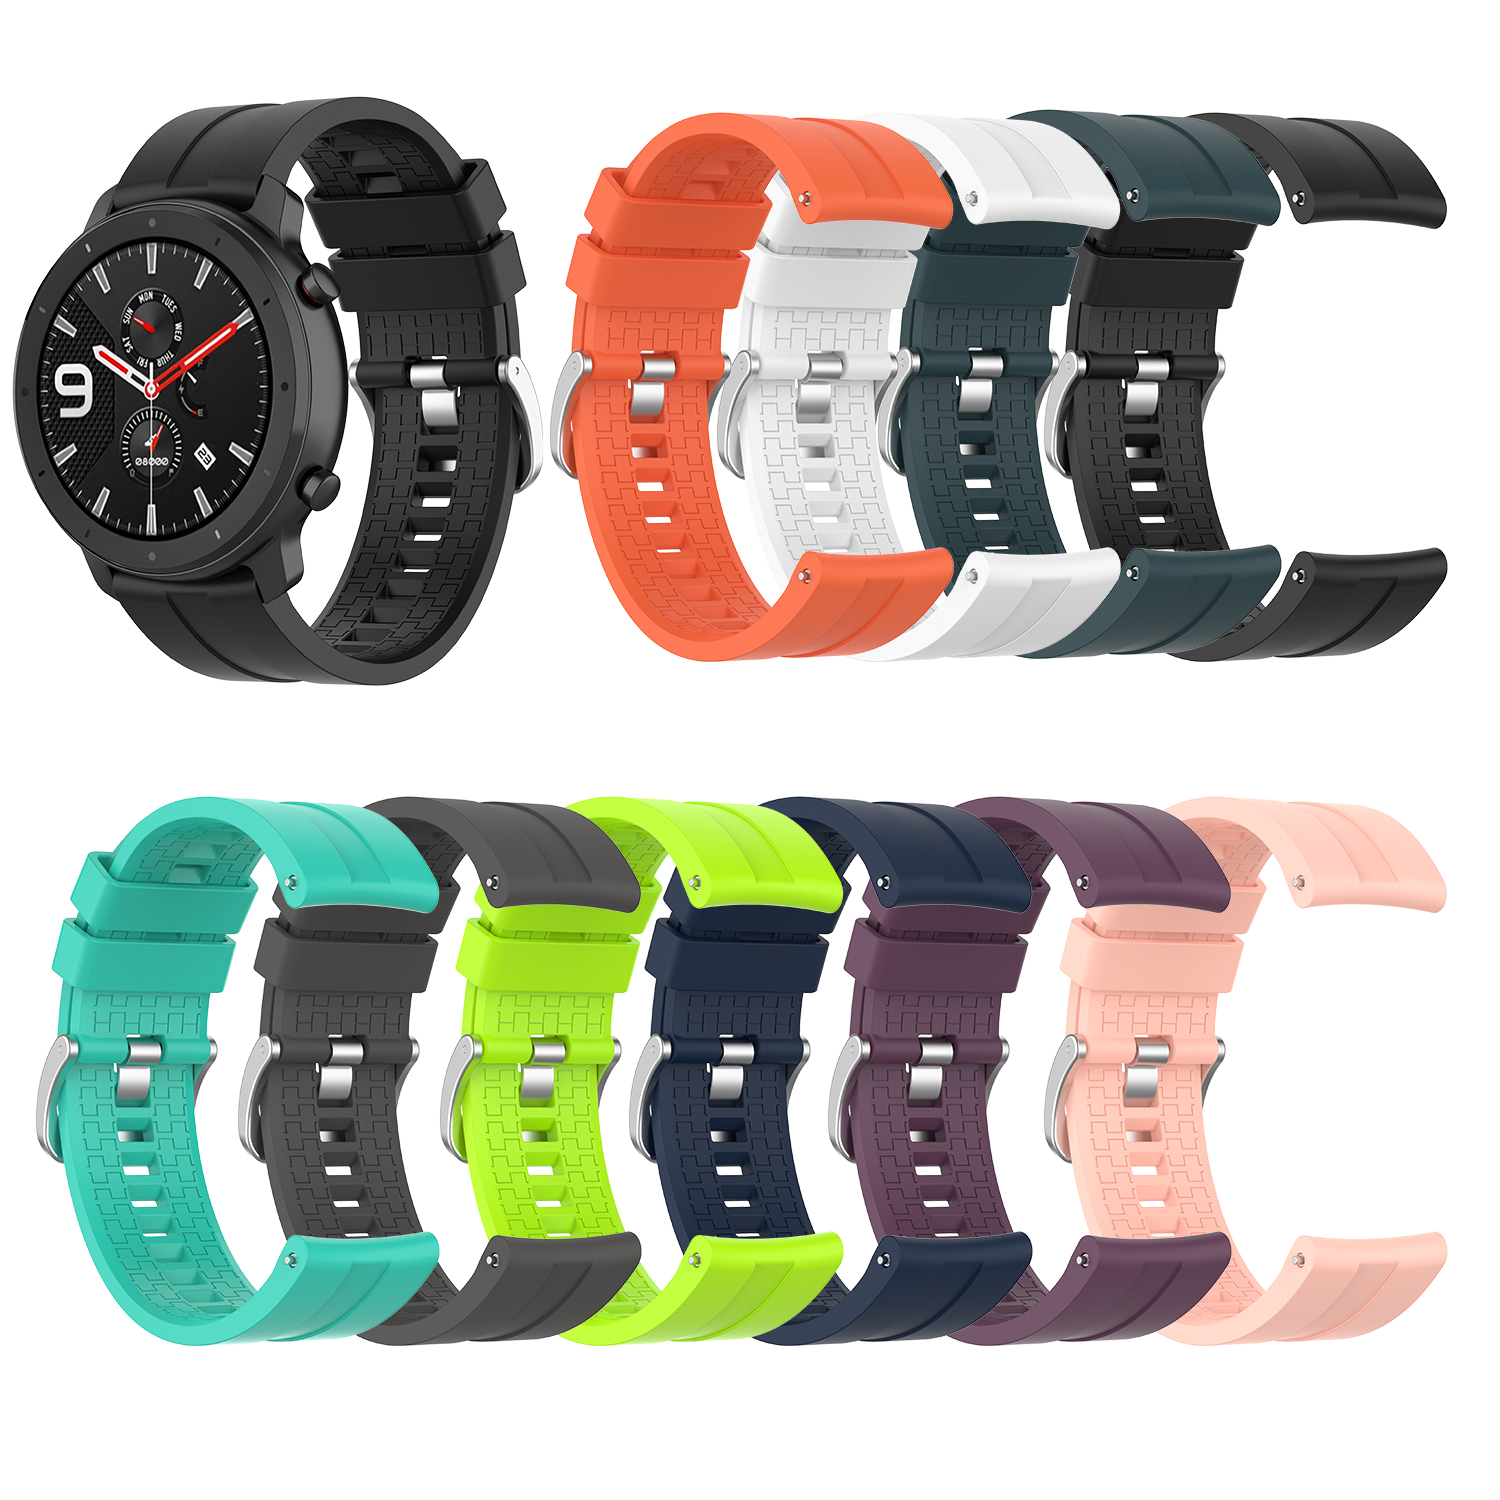 Soft Silicone Strap Bracelet For Huami Amazfit Strap Watch Band 22mm  For Amazfit Pace Stratos 2/2S Straps Smart Sports Bracelet